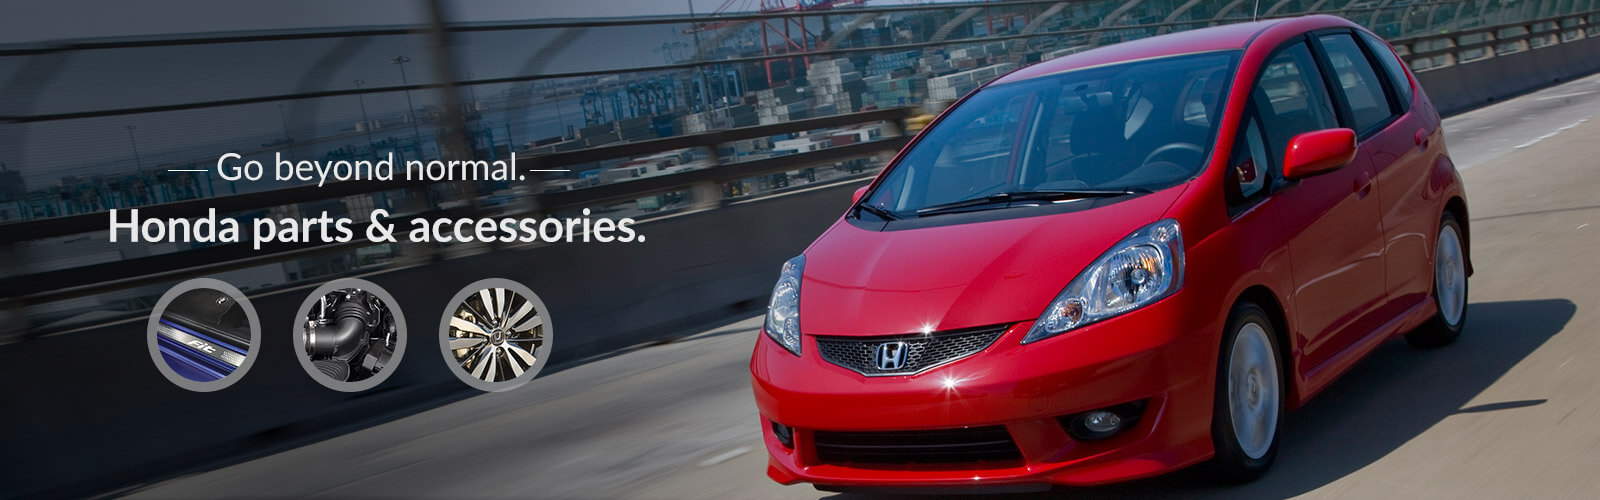 Honda Parts and Accessories